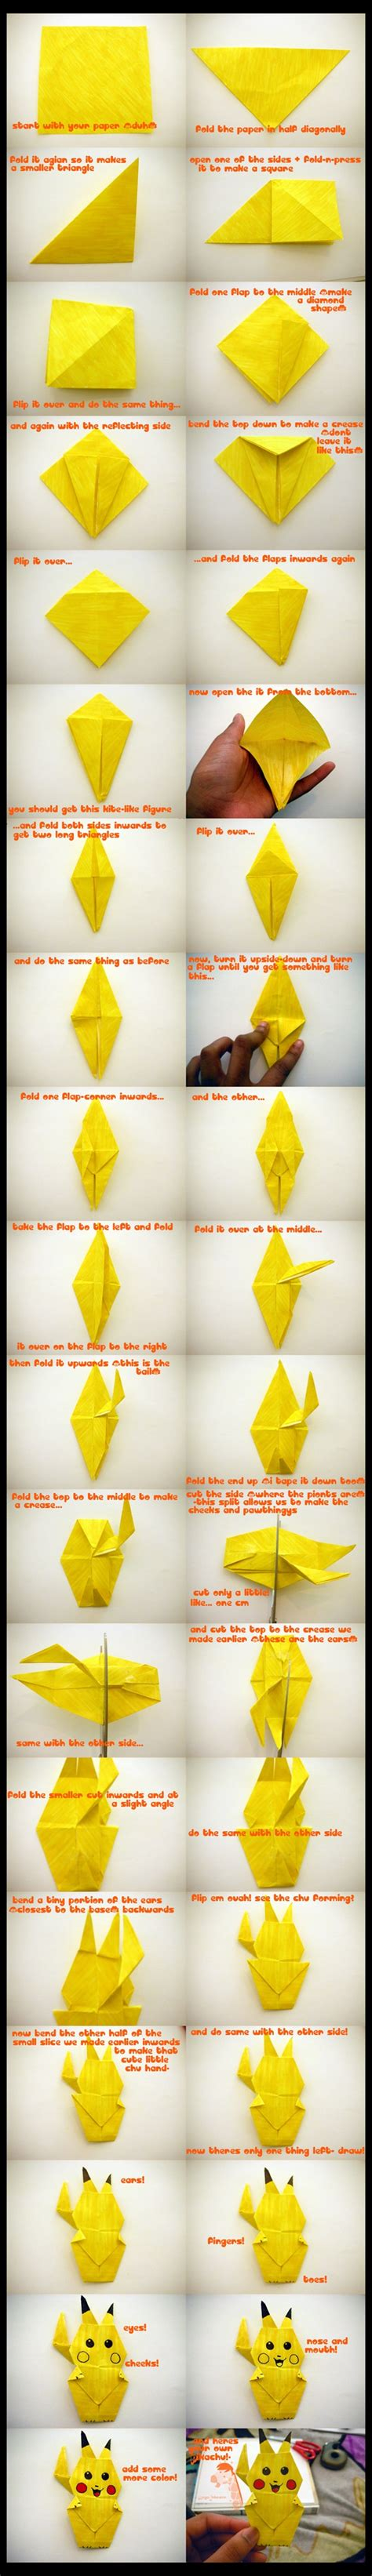 How To Make A Pikachu Origami - related keywords suggestions for origami pikachu